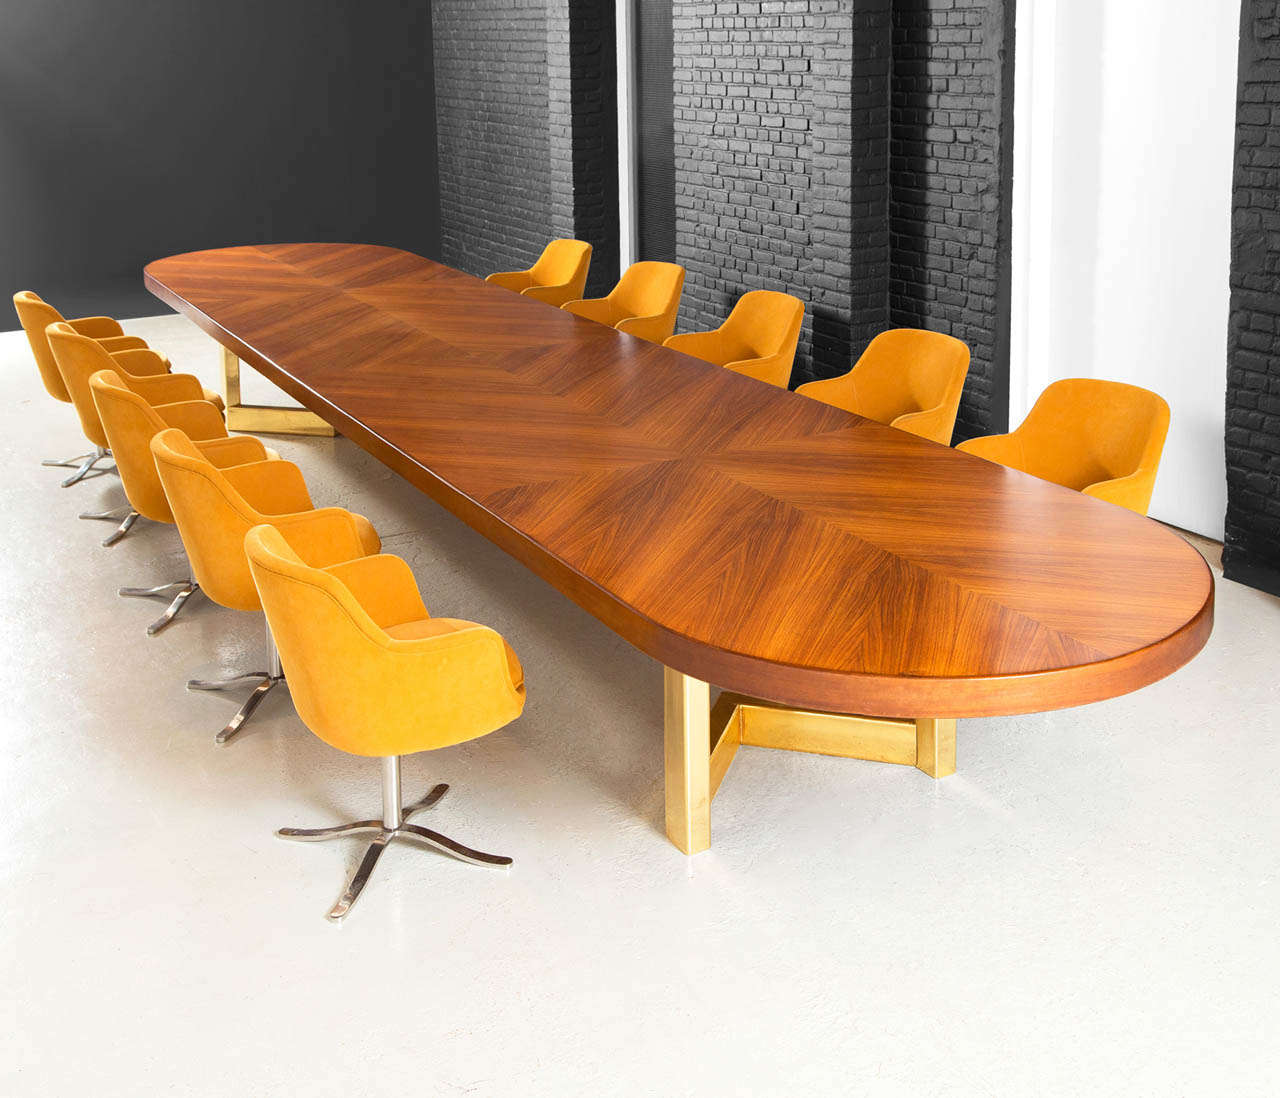 Foot Conference Table In Rosewood With Brass Base For Sale At Stdibs - 5 foot conference table